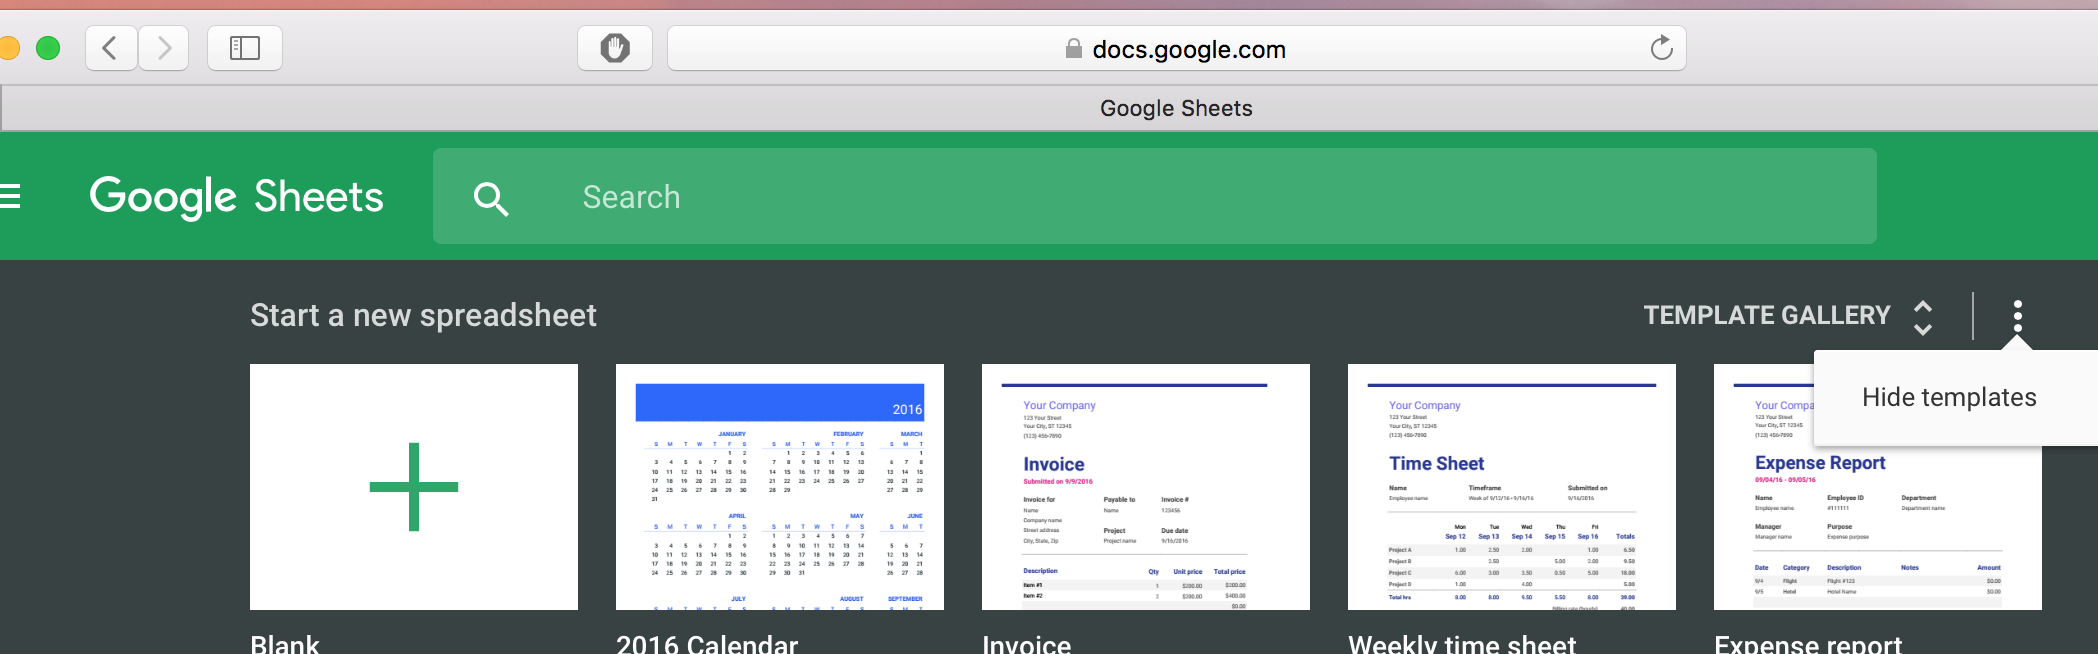 How To Hide Google Sheets Template Software Strategy And Management